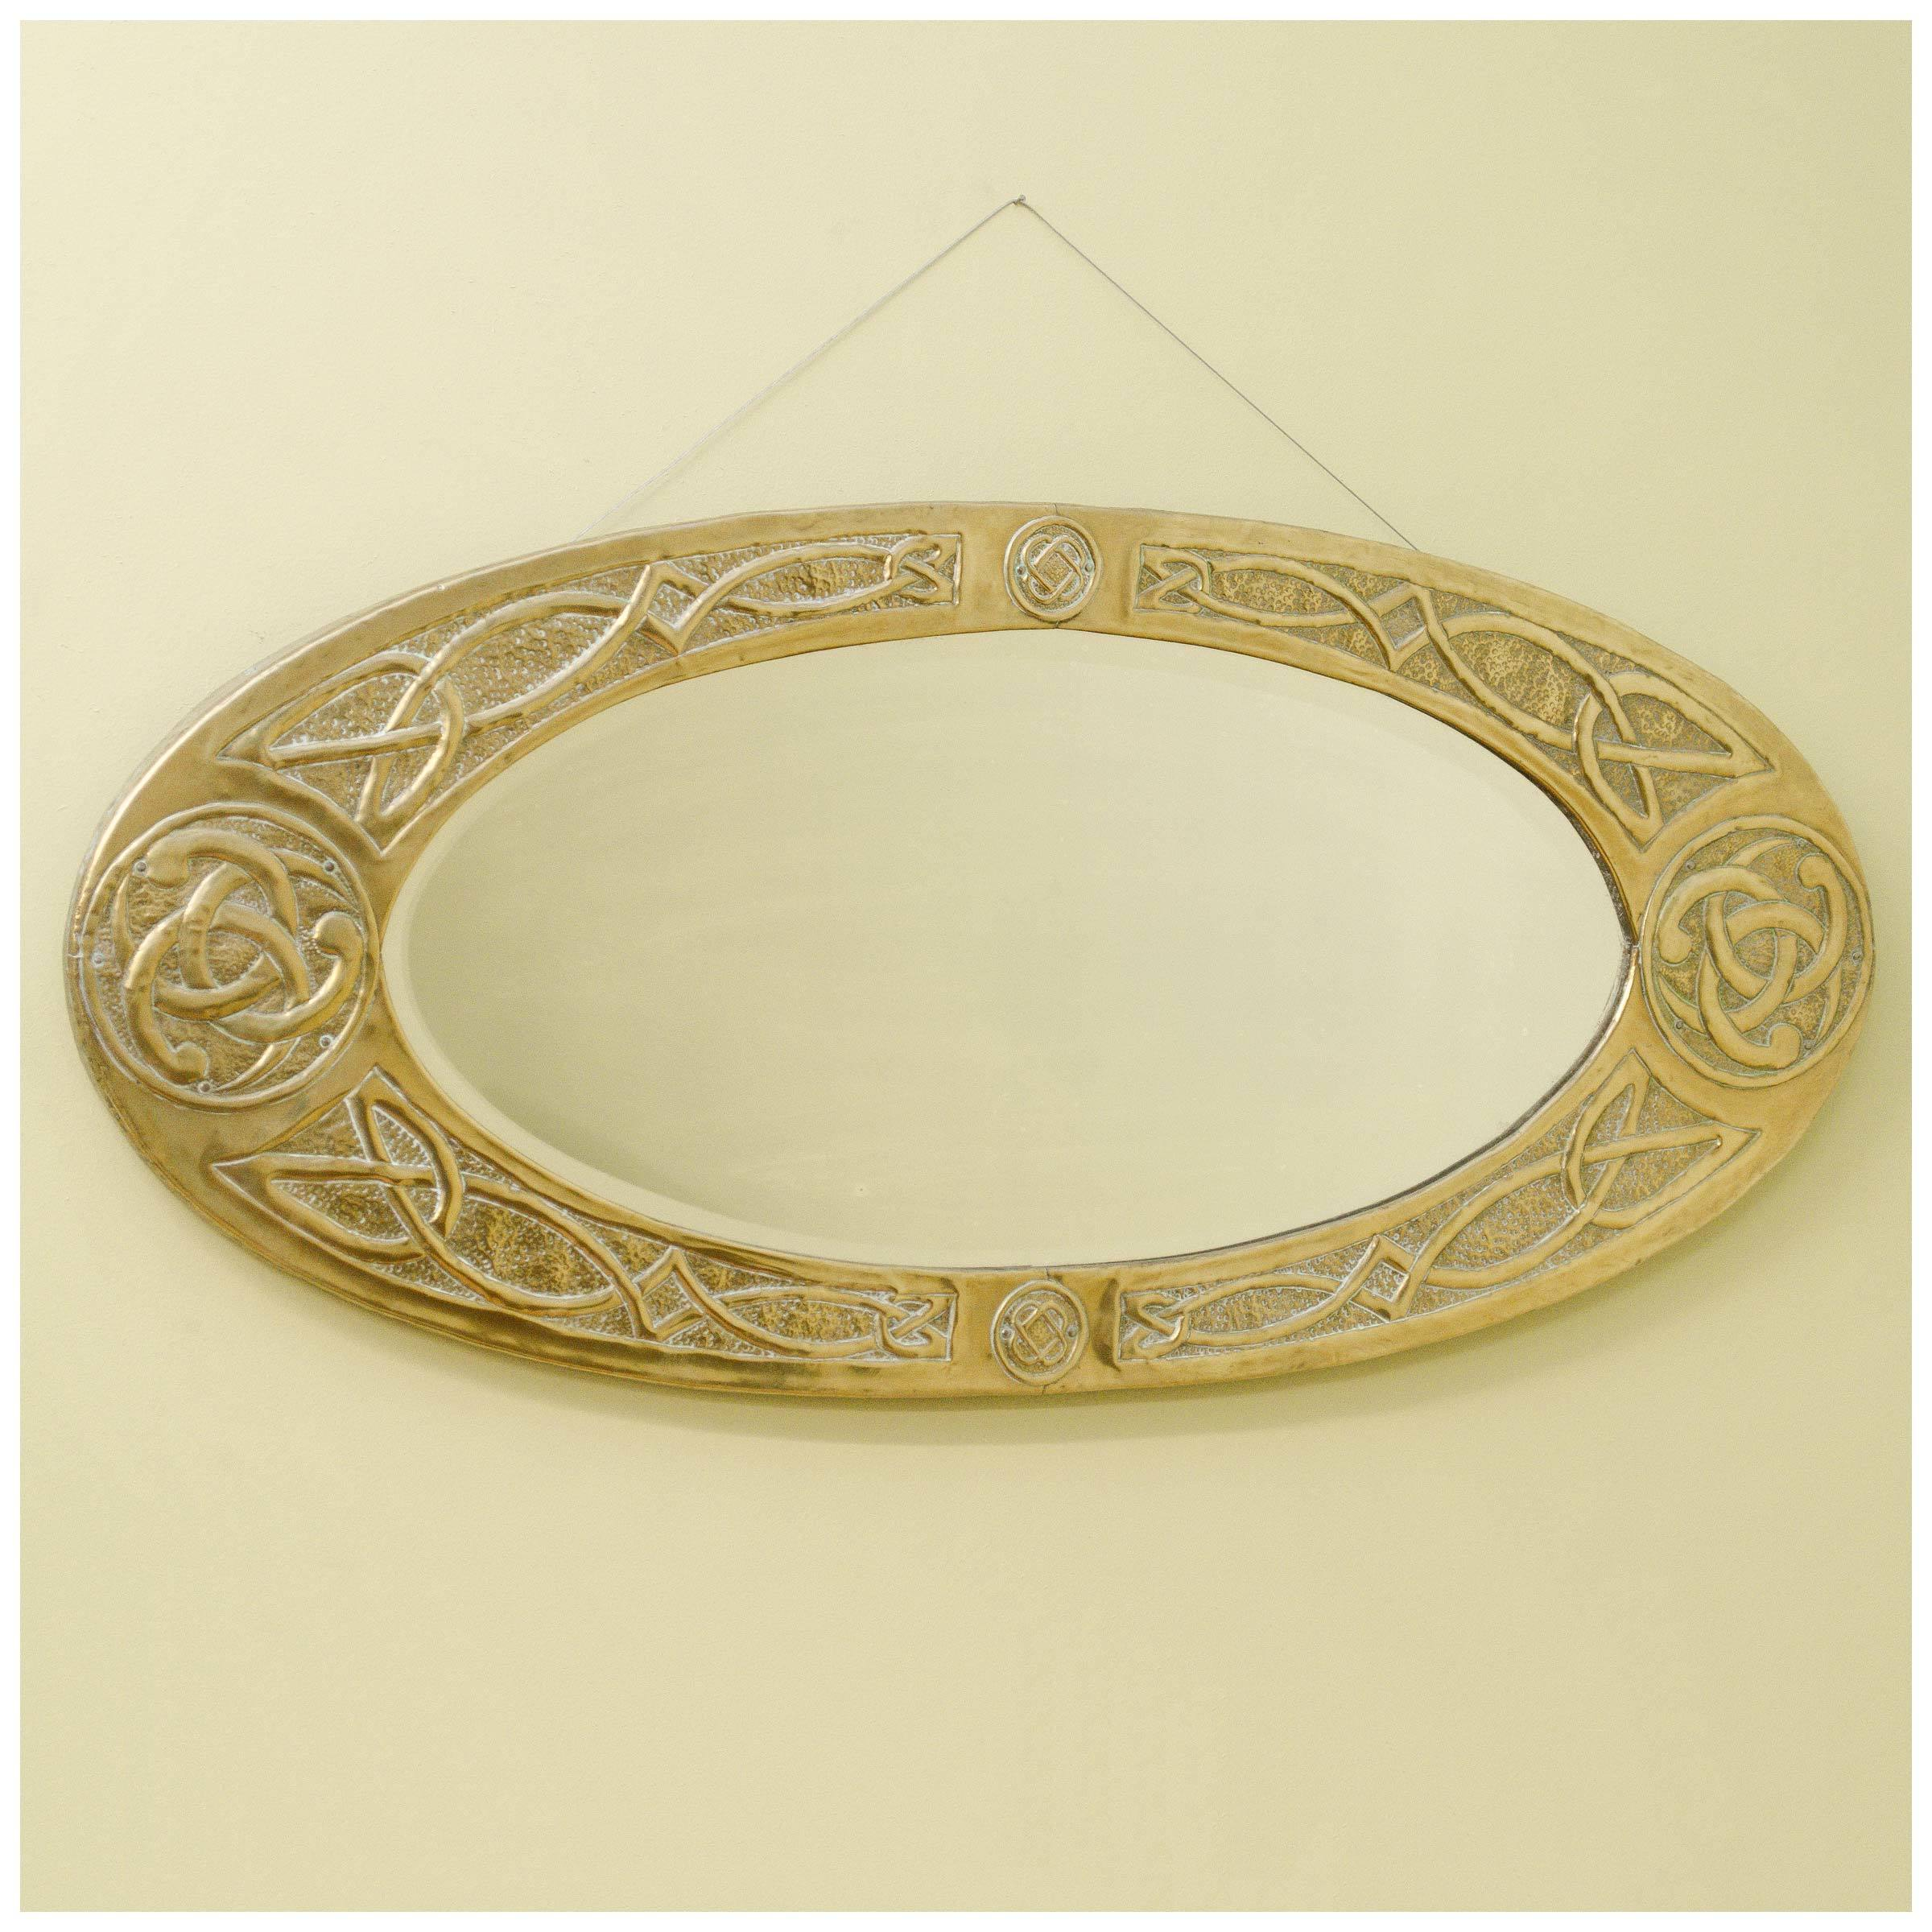 arts-crafts-brass-framed-wall-mirror-with-celtic-knotwork-decoration-b0020050a.jpg